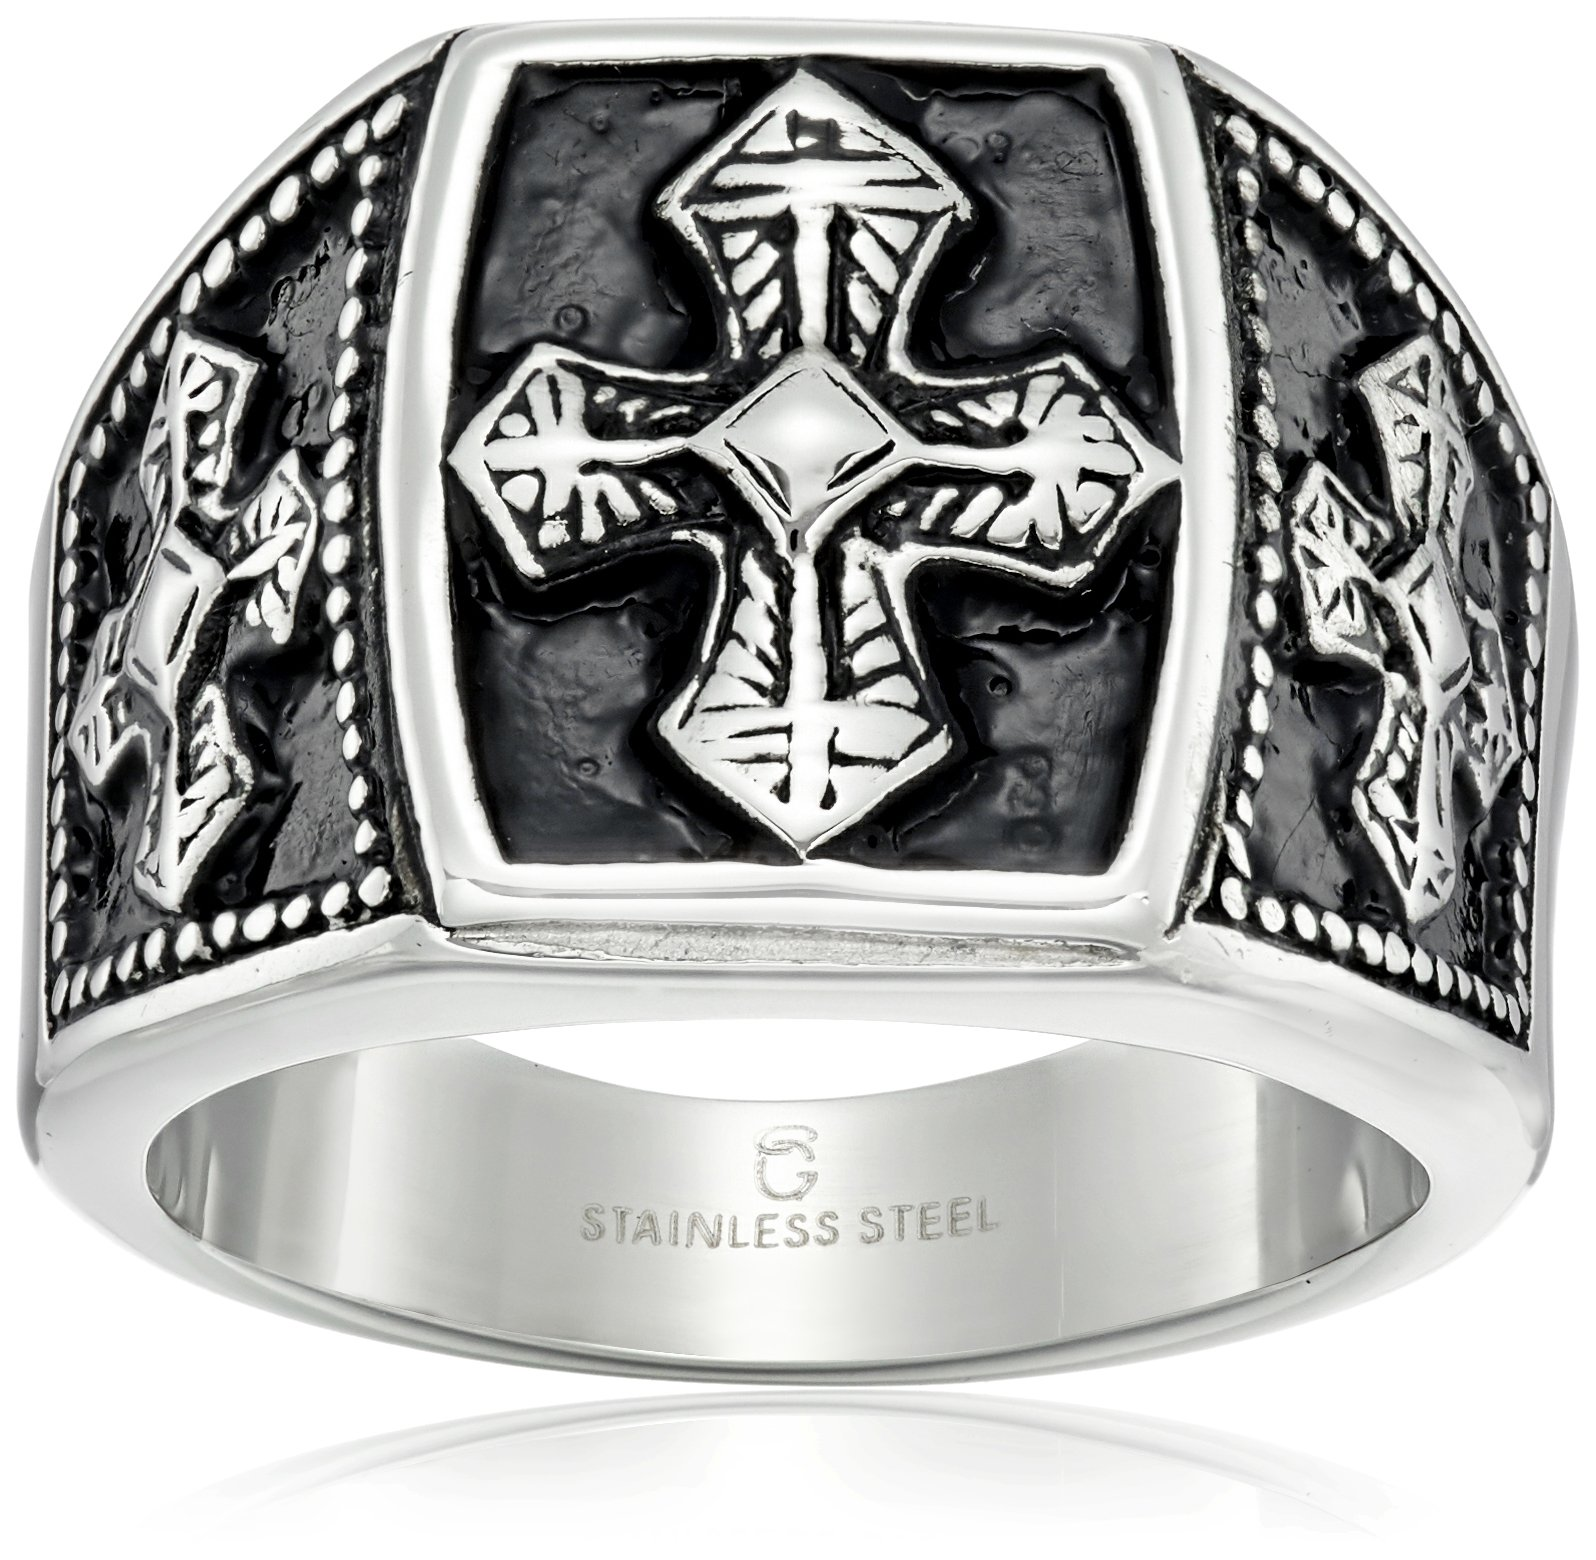 Cold Steel Stainless Steel and Black IP Tribal Ring, Size 11